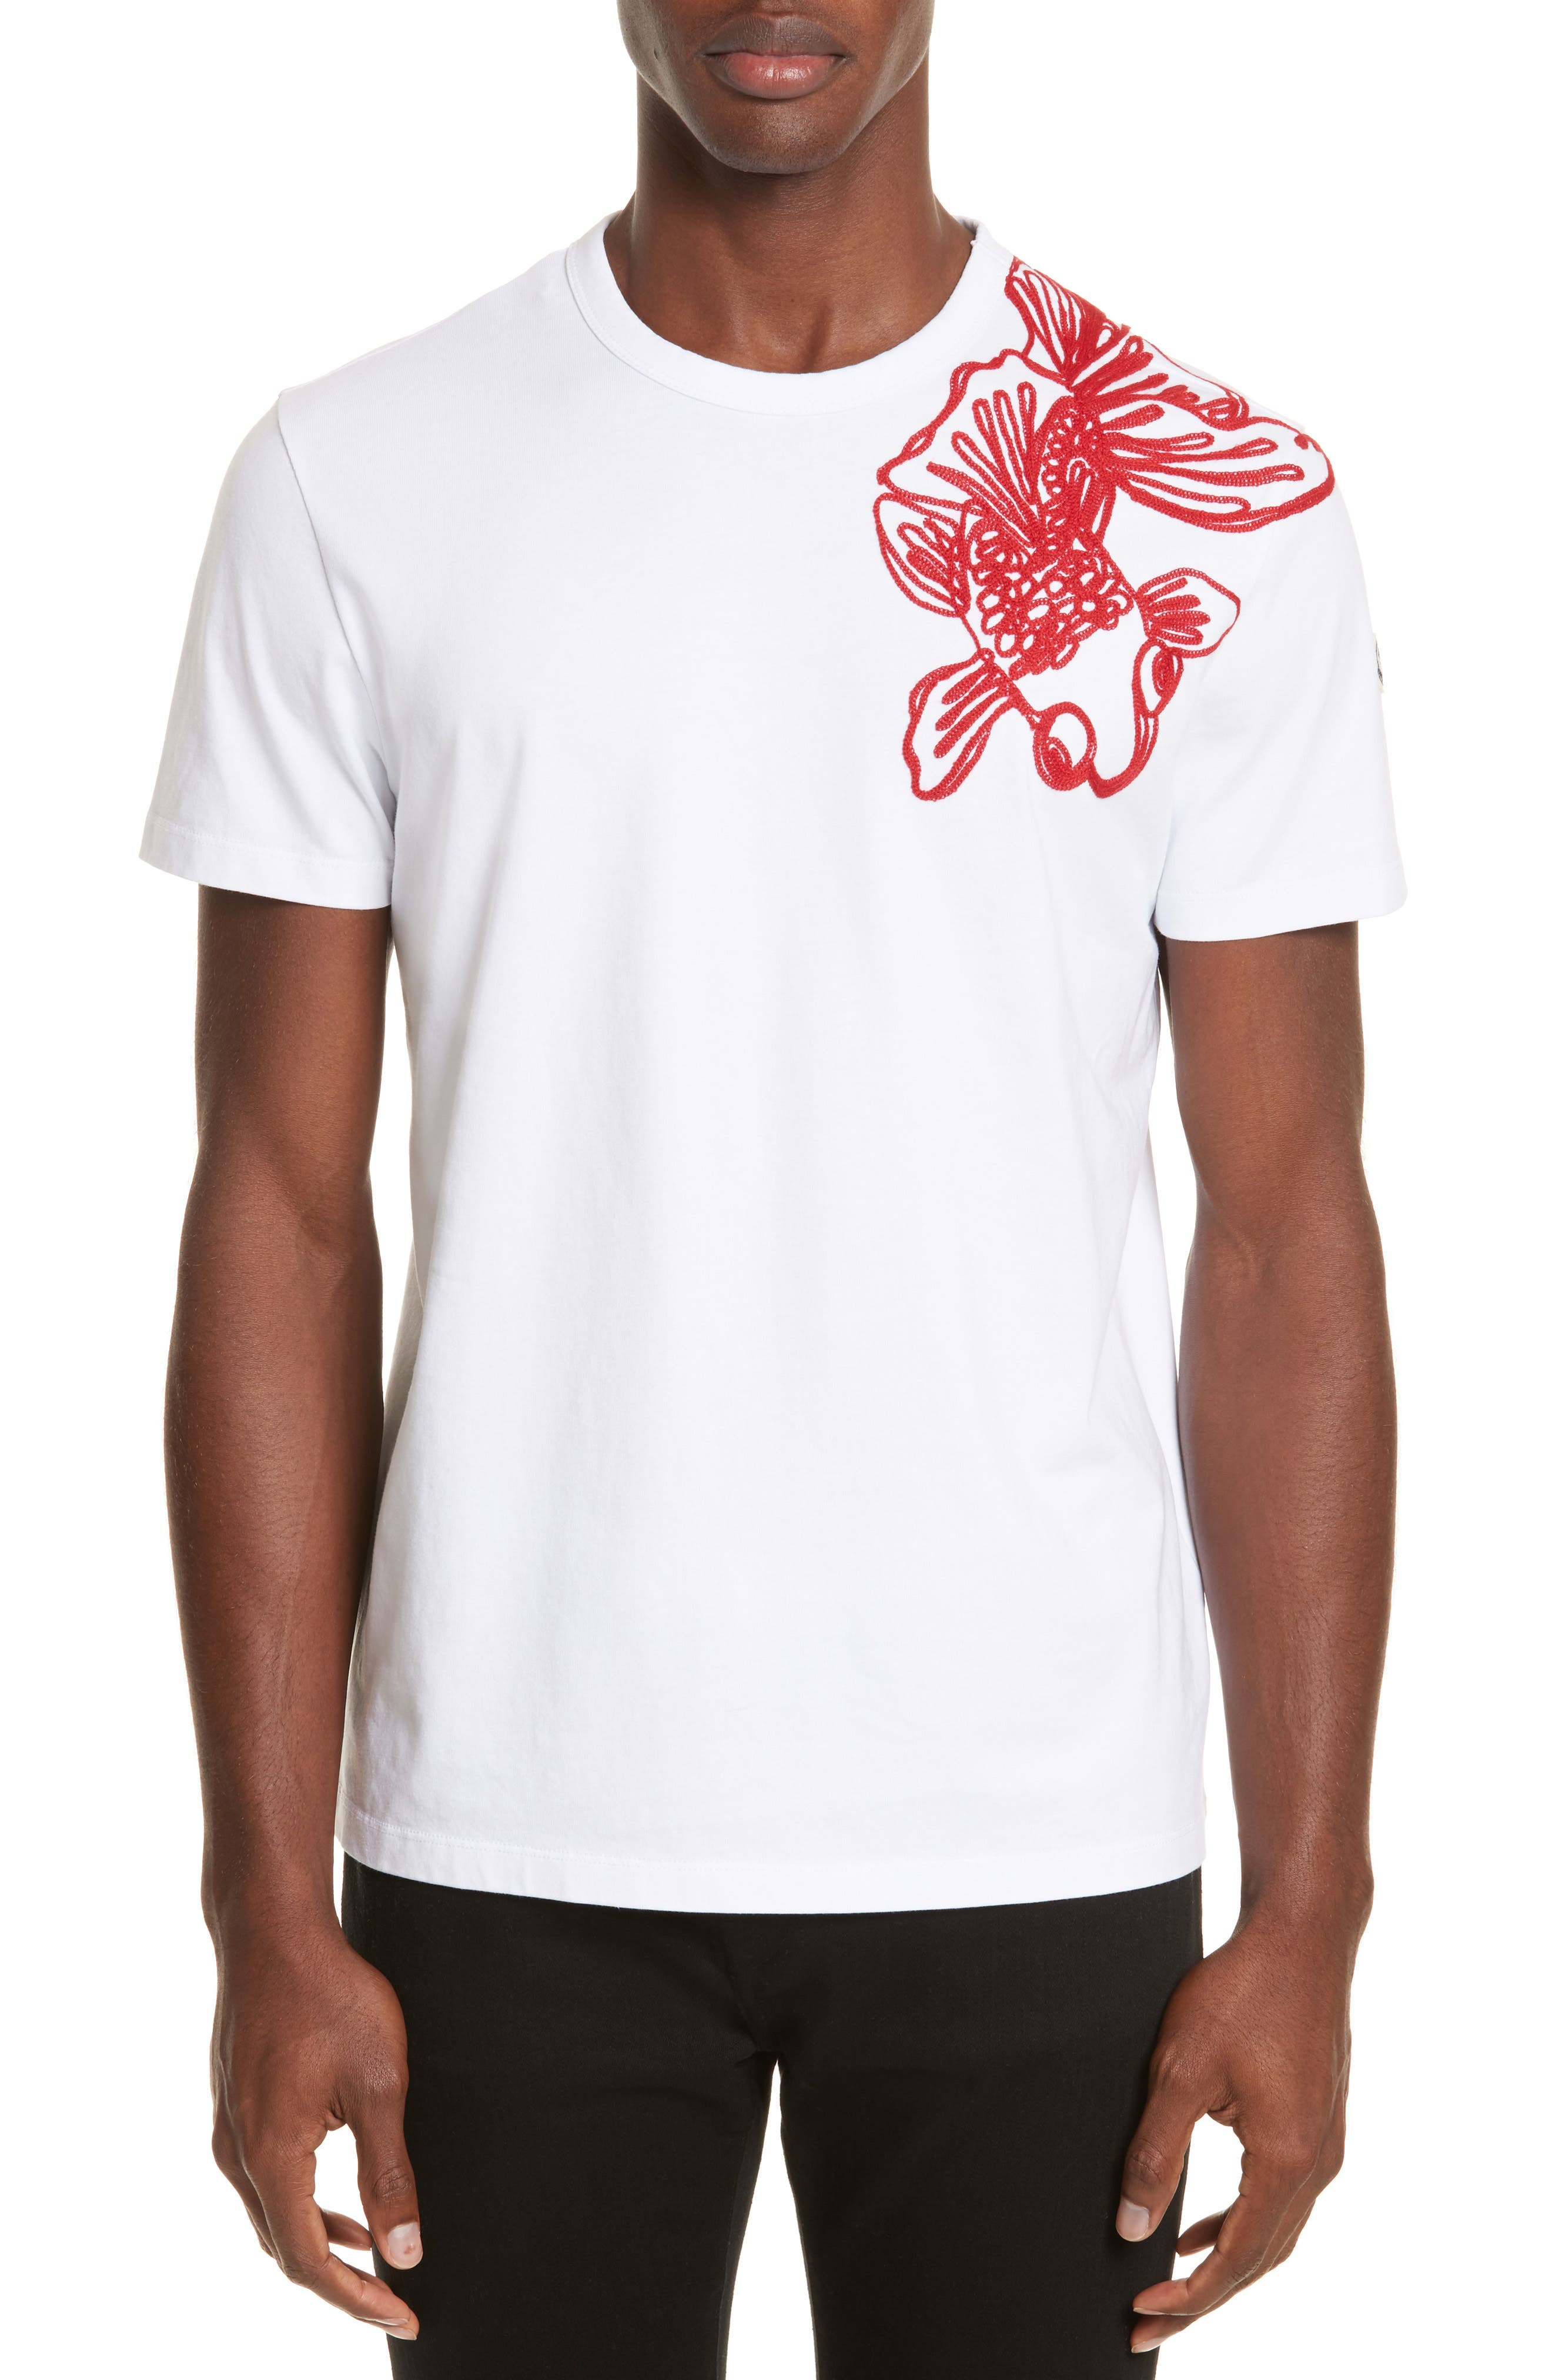 Embroidered Koi Fish T-Shirt,                         Main,                         color, White